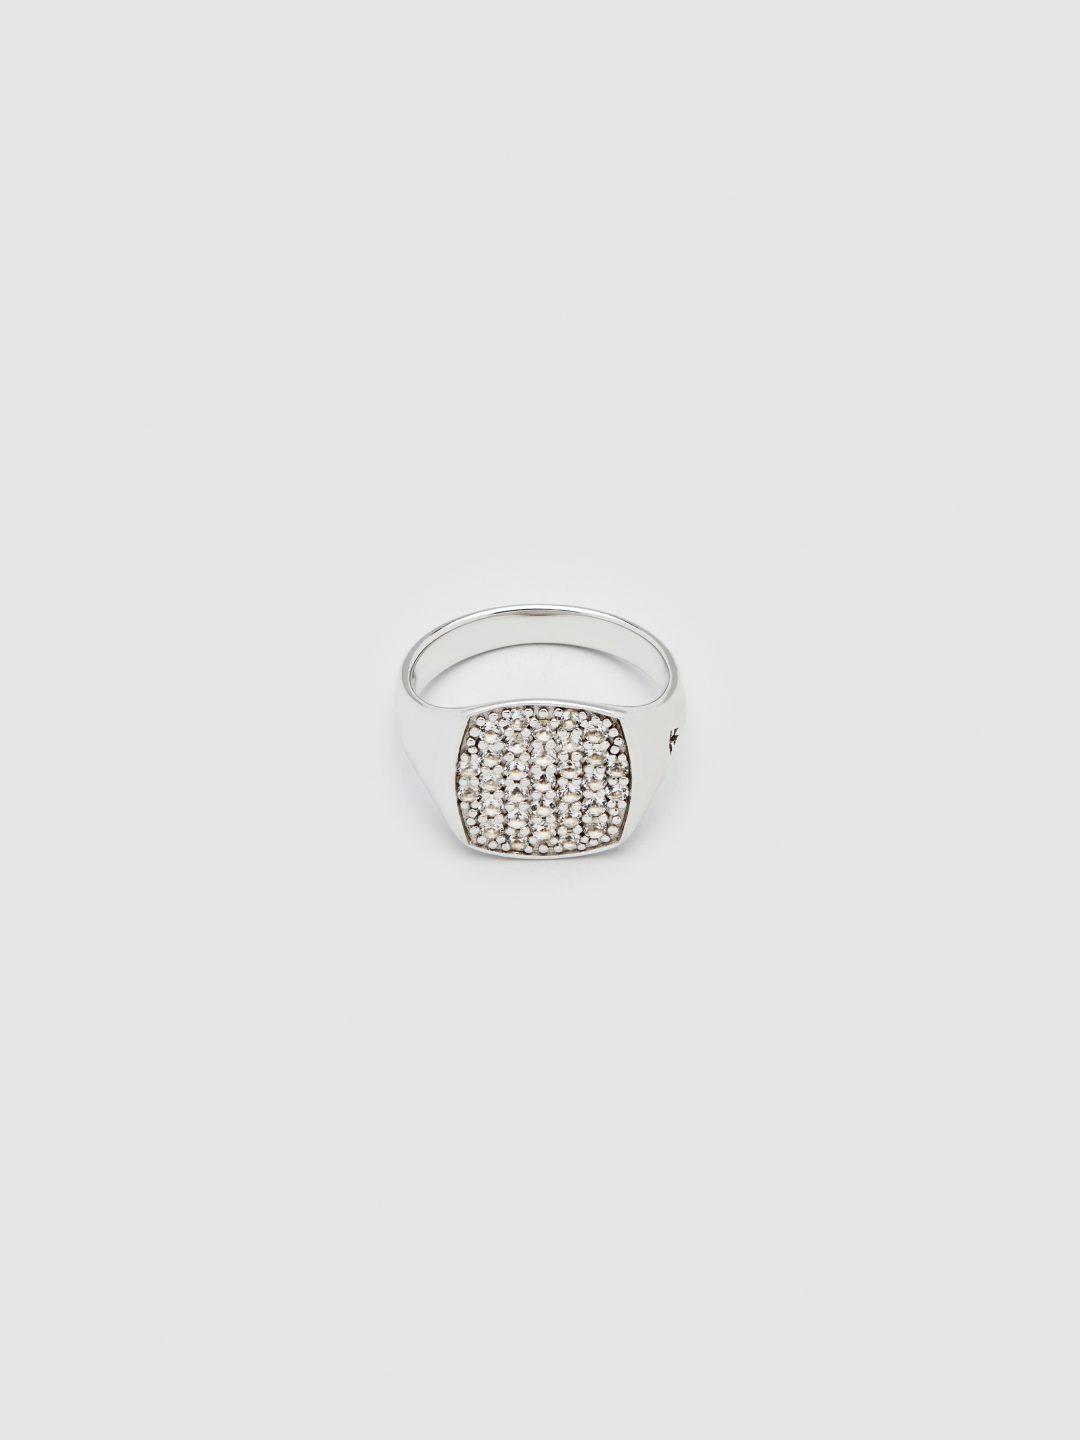 Tom wood Mini Cushion White Topaz Ring Rika studios